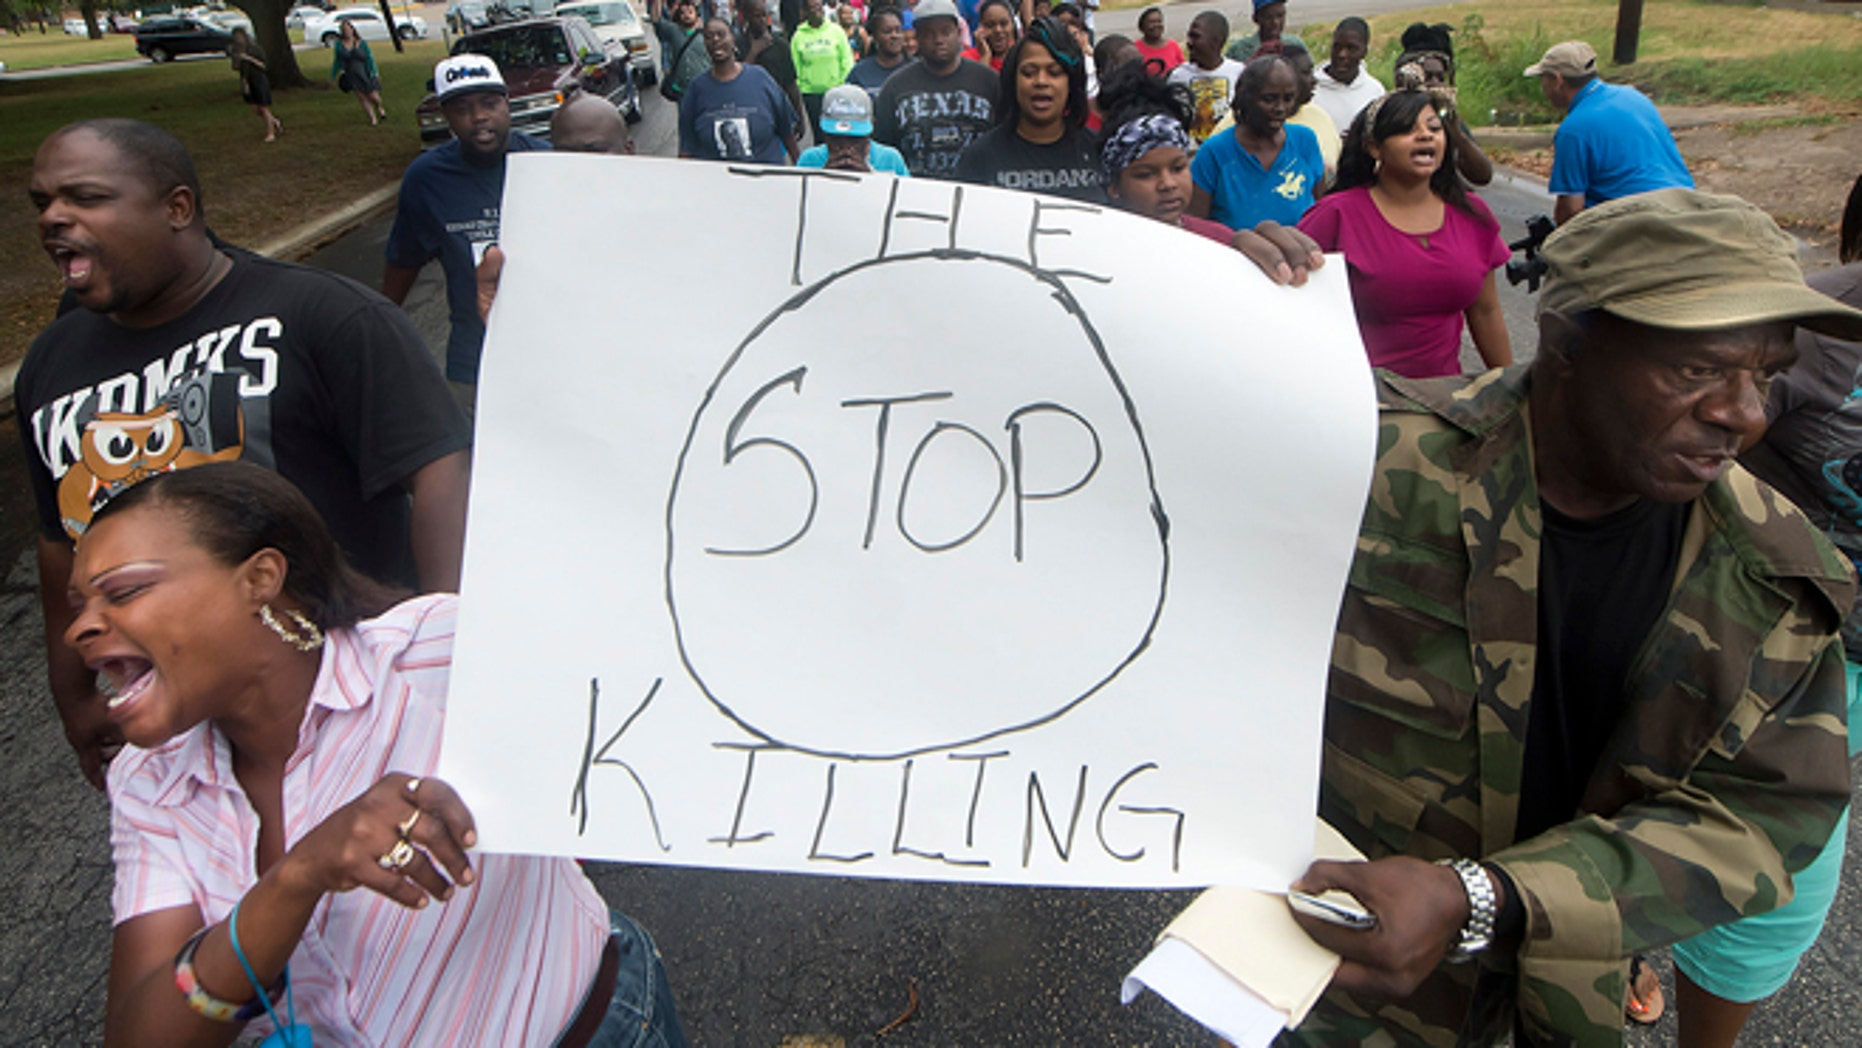 """K.K. Davis, left, and Tommy Jones of Hearne carry a sign with other protesters outside the Hearne, Texas police department Thursday, May 8, 2014 following the Tuesday shooting of 93-year-old woman. Robertson County District Attorney Coty Siegert said Pearlie Golden was shot Tuesday night by Officer Stephen Stem. Stem was responding to a 911 call about a disturbance involving a woman with a gun. The Hearne Police Department says Golden """"brandished a firearm"""" when Stem encountered her. He then shot her multiple times. The investigation into the shooting is being handled by the Texas Rangers.  (AP Photo/Bryan College Station Eagle, Stuart Villanueva)"""